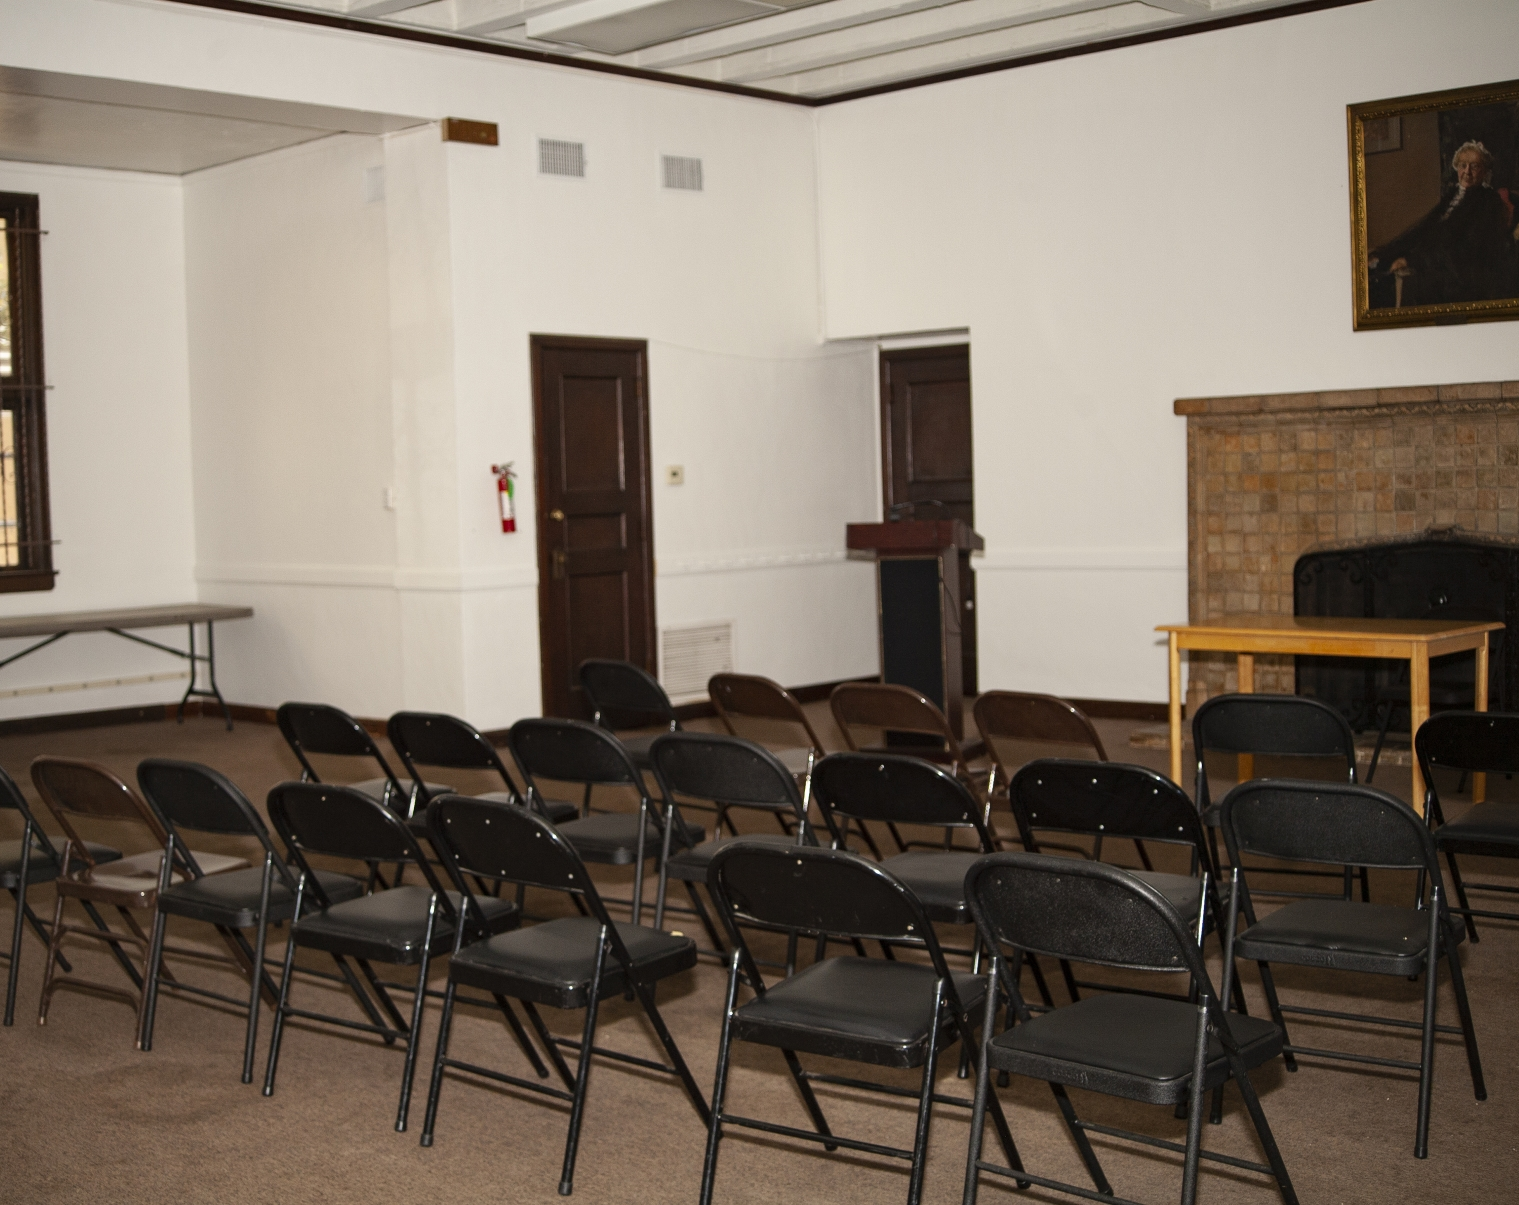 Severance Room - The Severance Room has 865 square feet of space and has been used for business, spiritual and community meetings. Capacity: 144 people, seated.